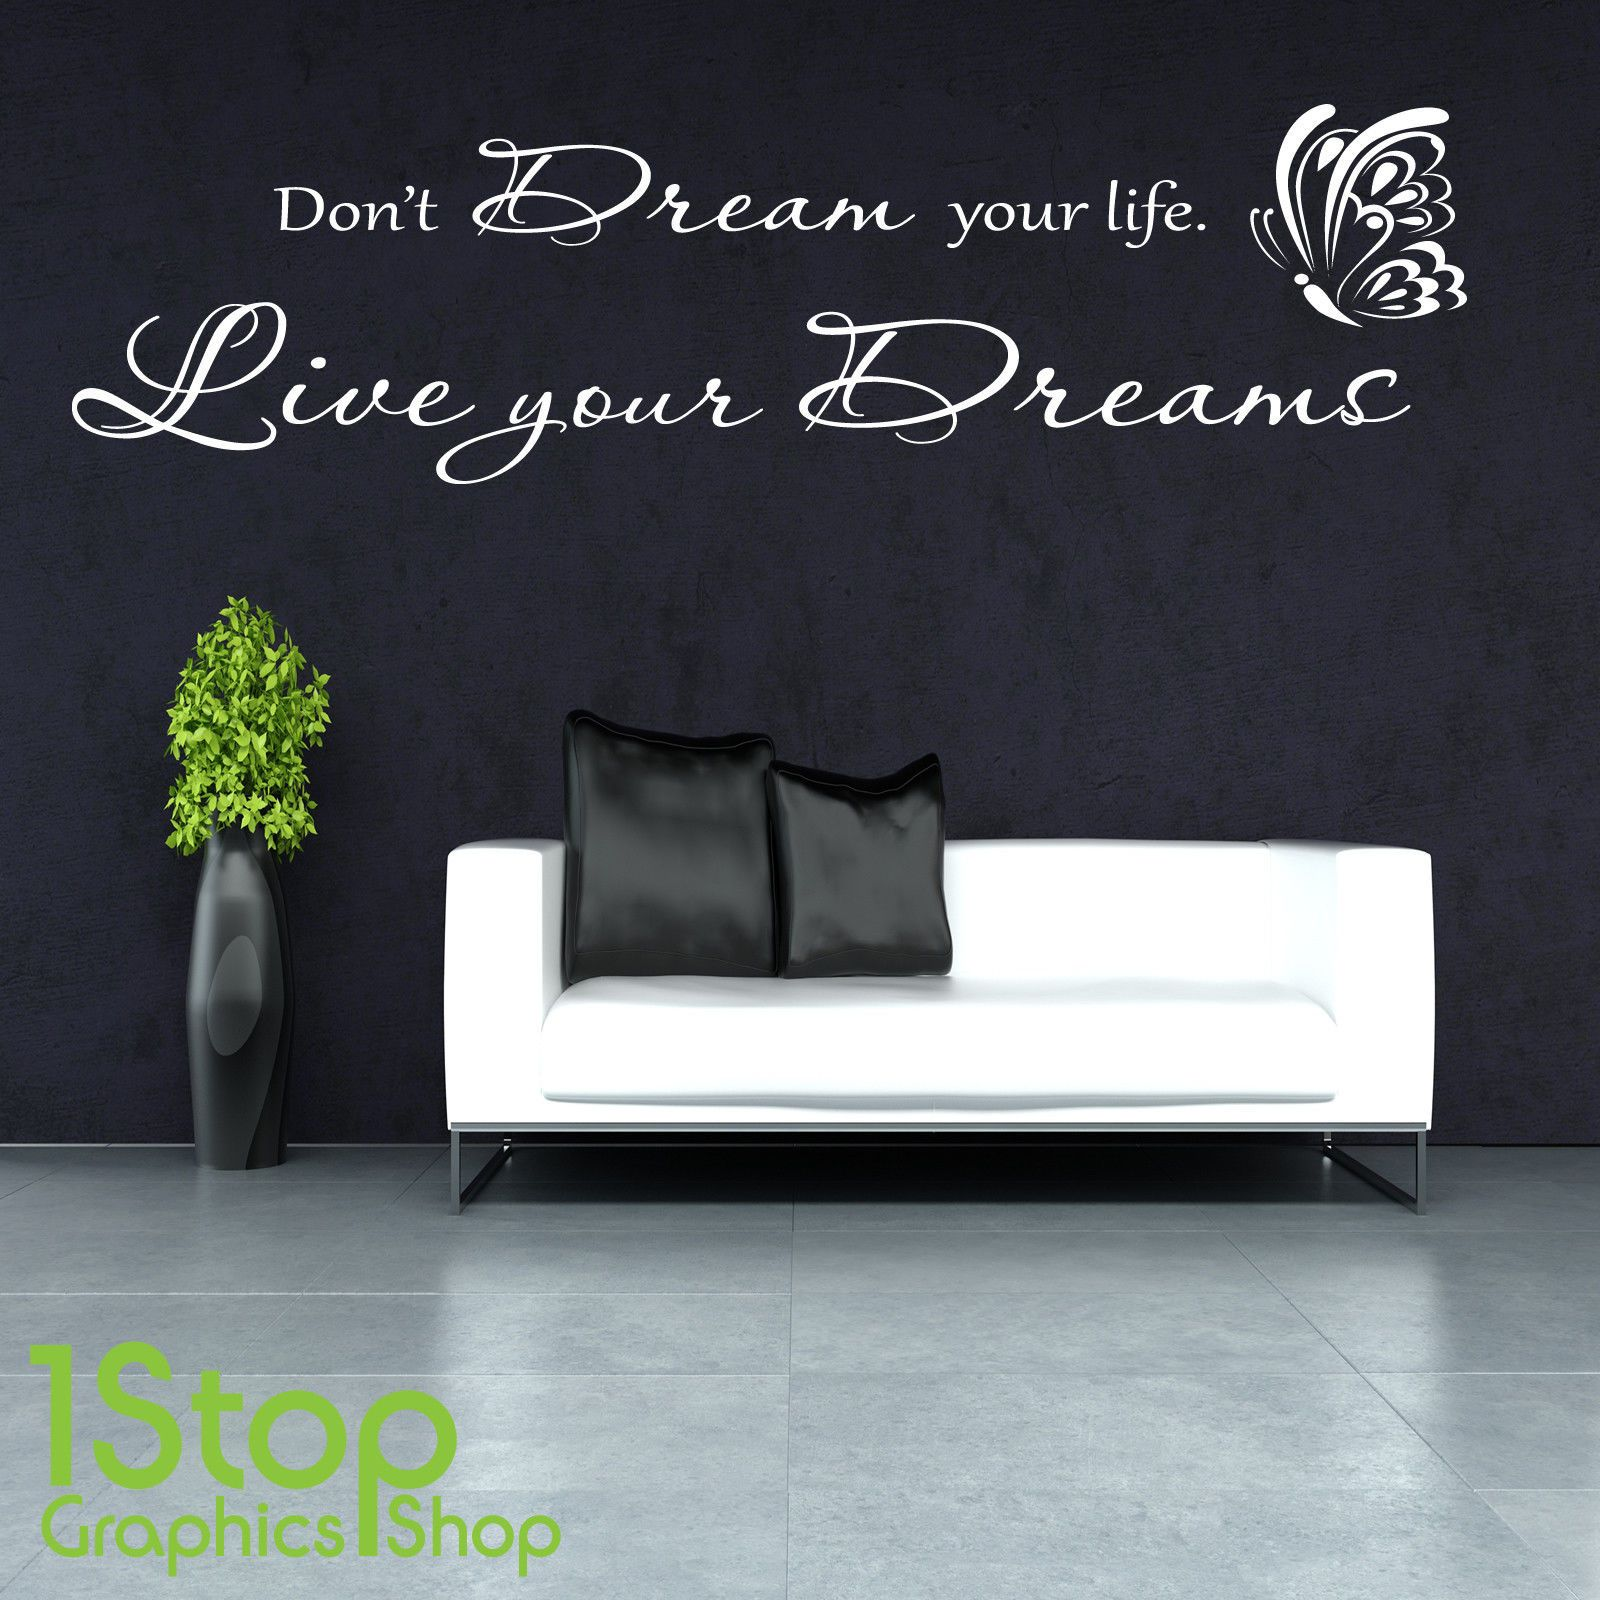 Donut dream your life wall sticker quote bedroom lounge wall art